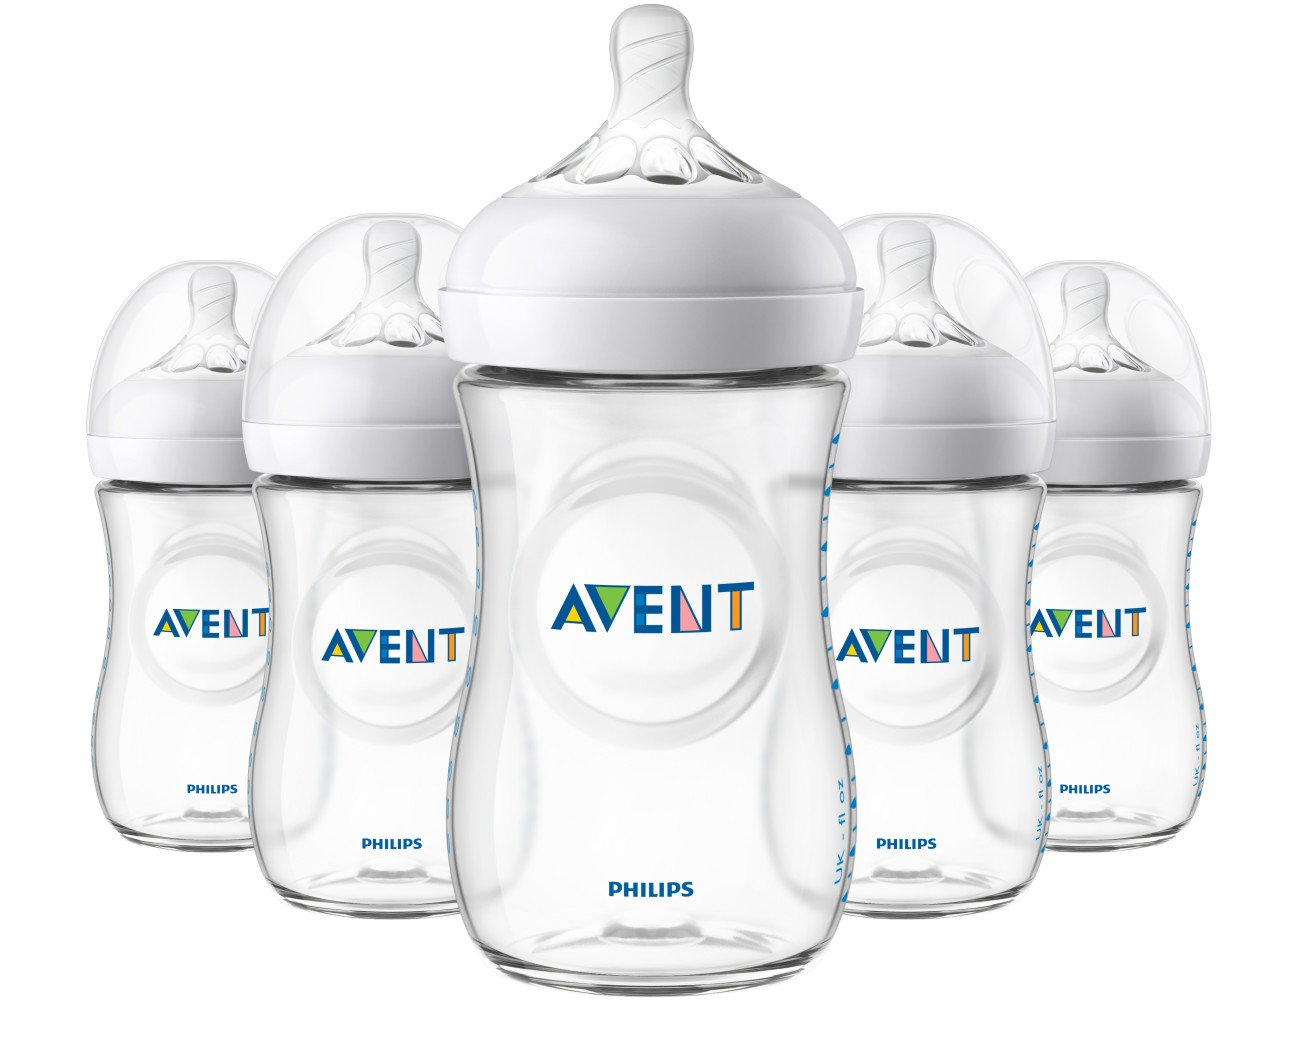 Philips Avent Natural Baby Bottle, Clear, 9oz, 5pk, SCF013/57 075020068422